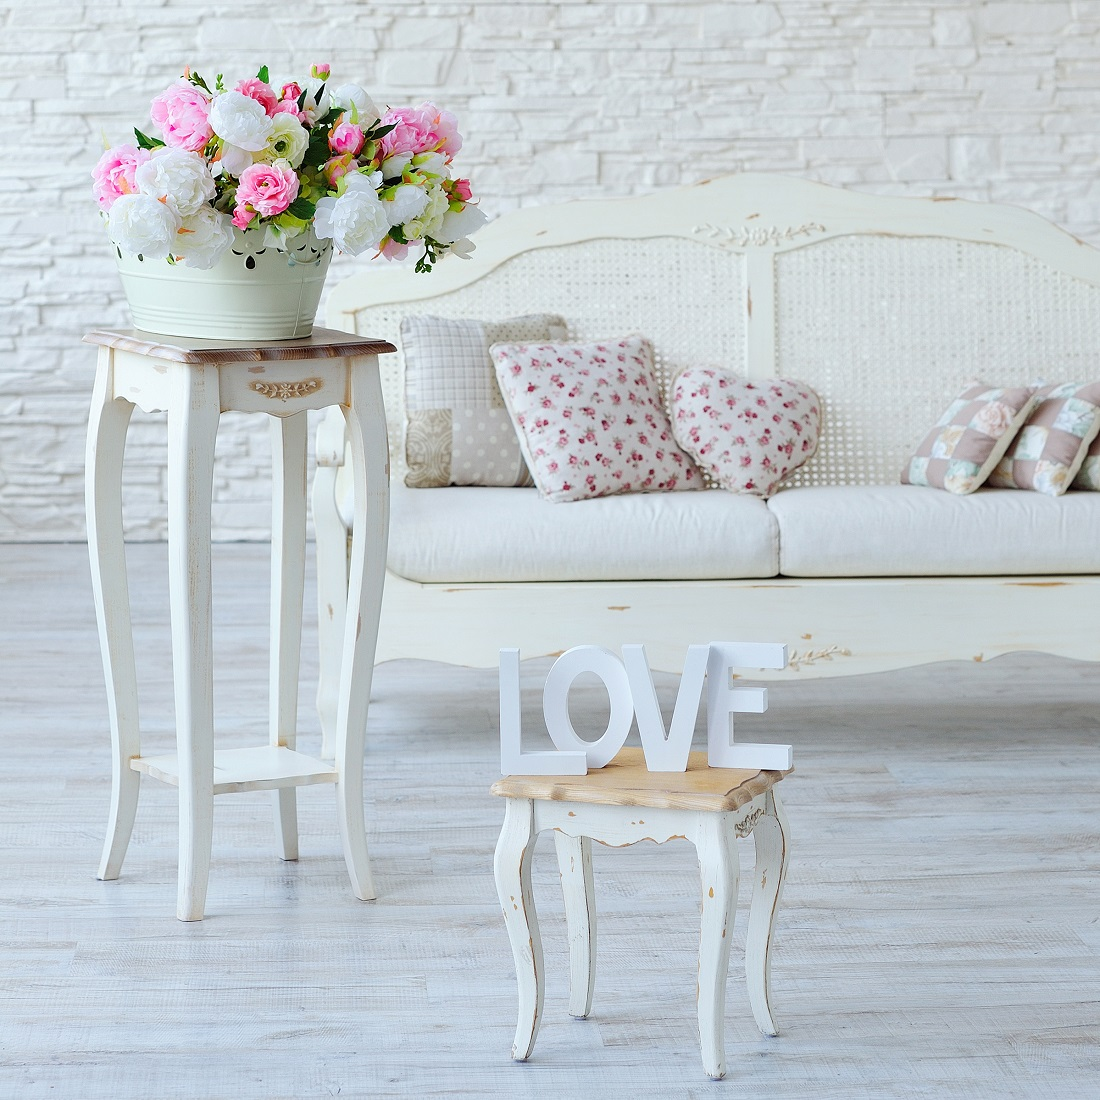 Interior with vintage furniture elements, love letters and decorative flowers